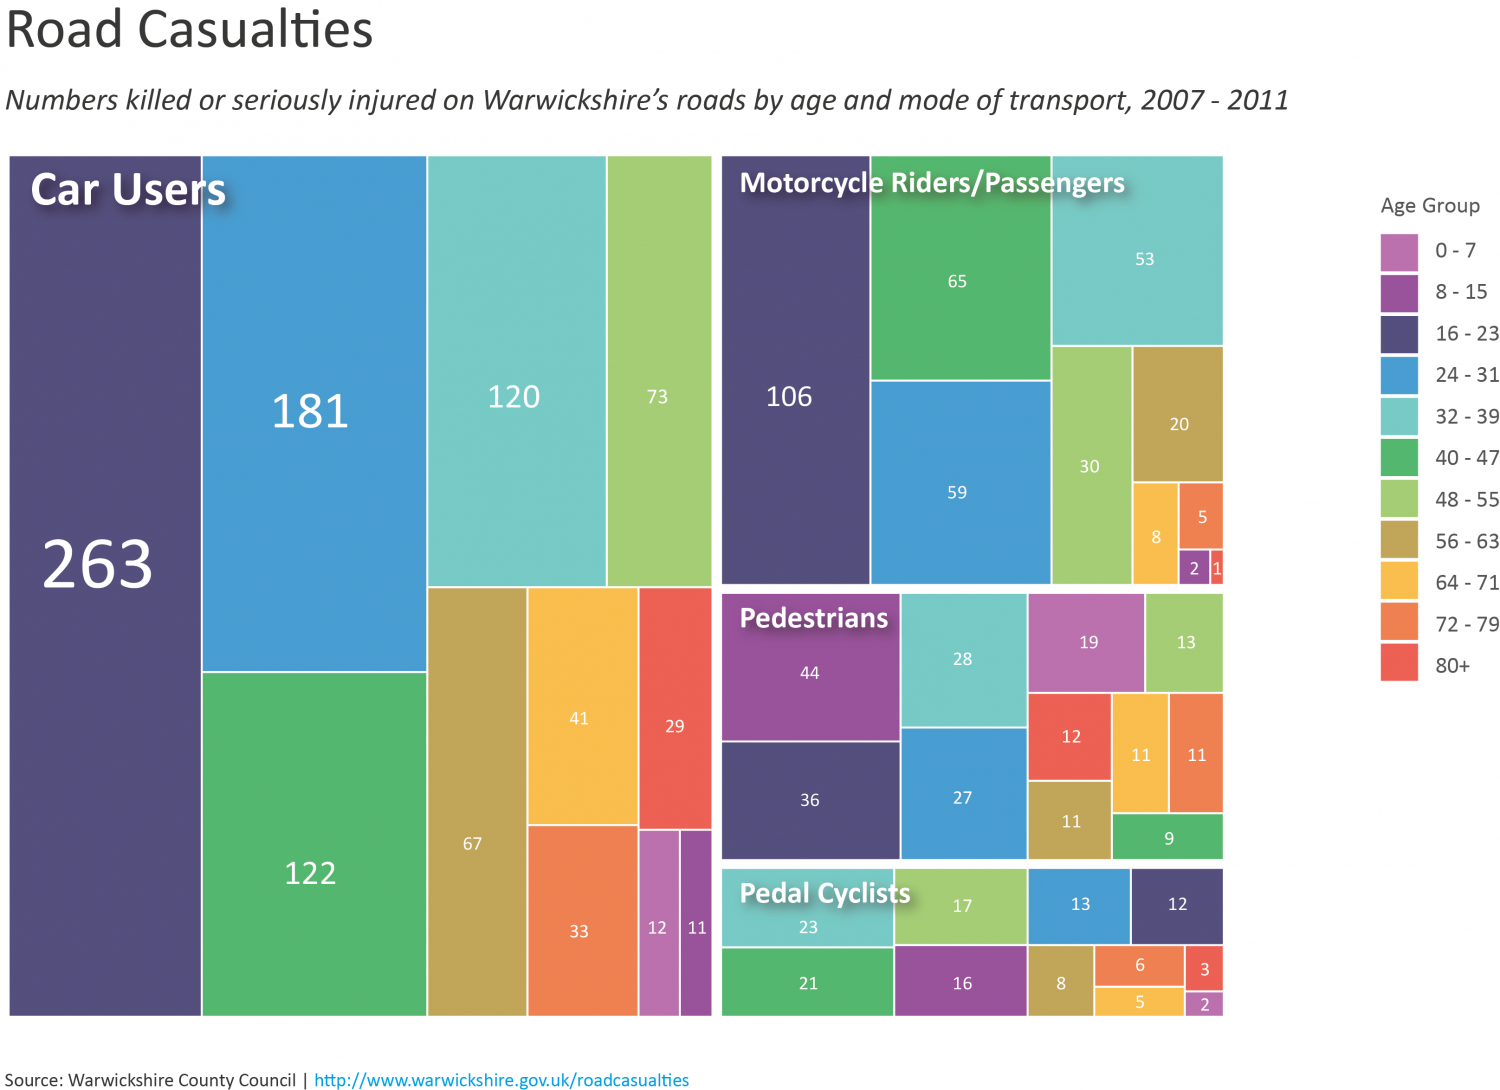 Road Casualties by Age and Mode of Transport Infographic